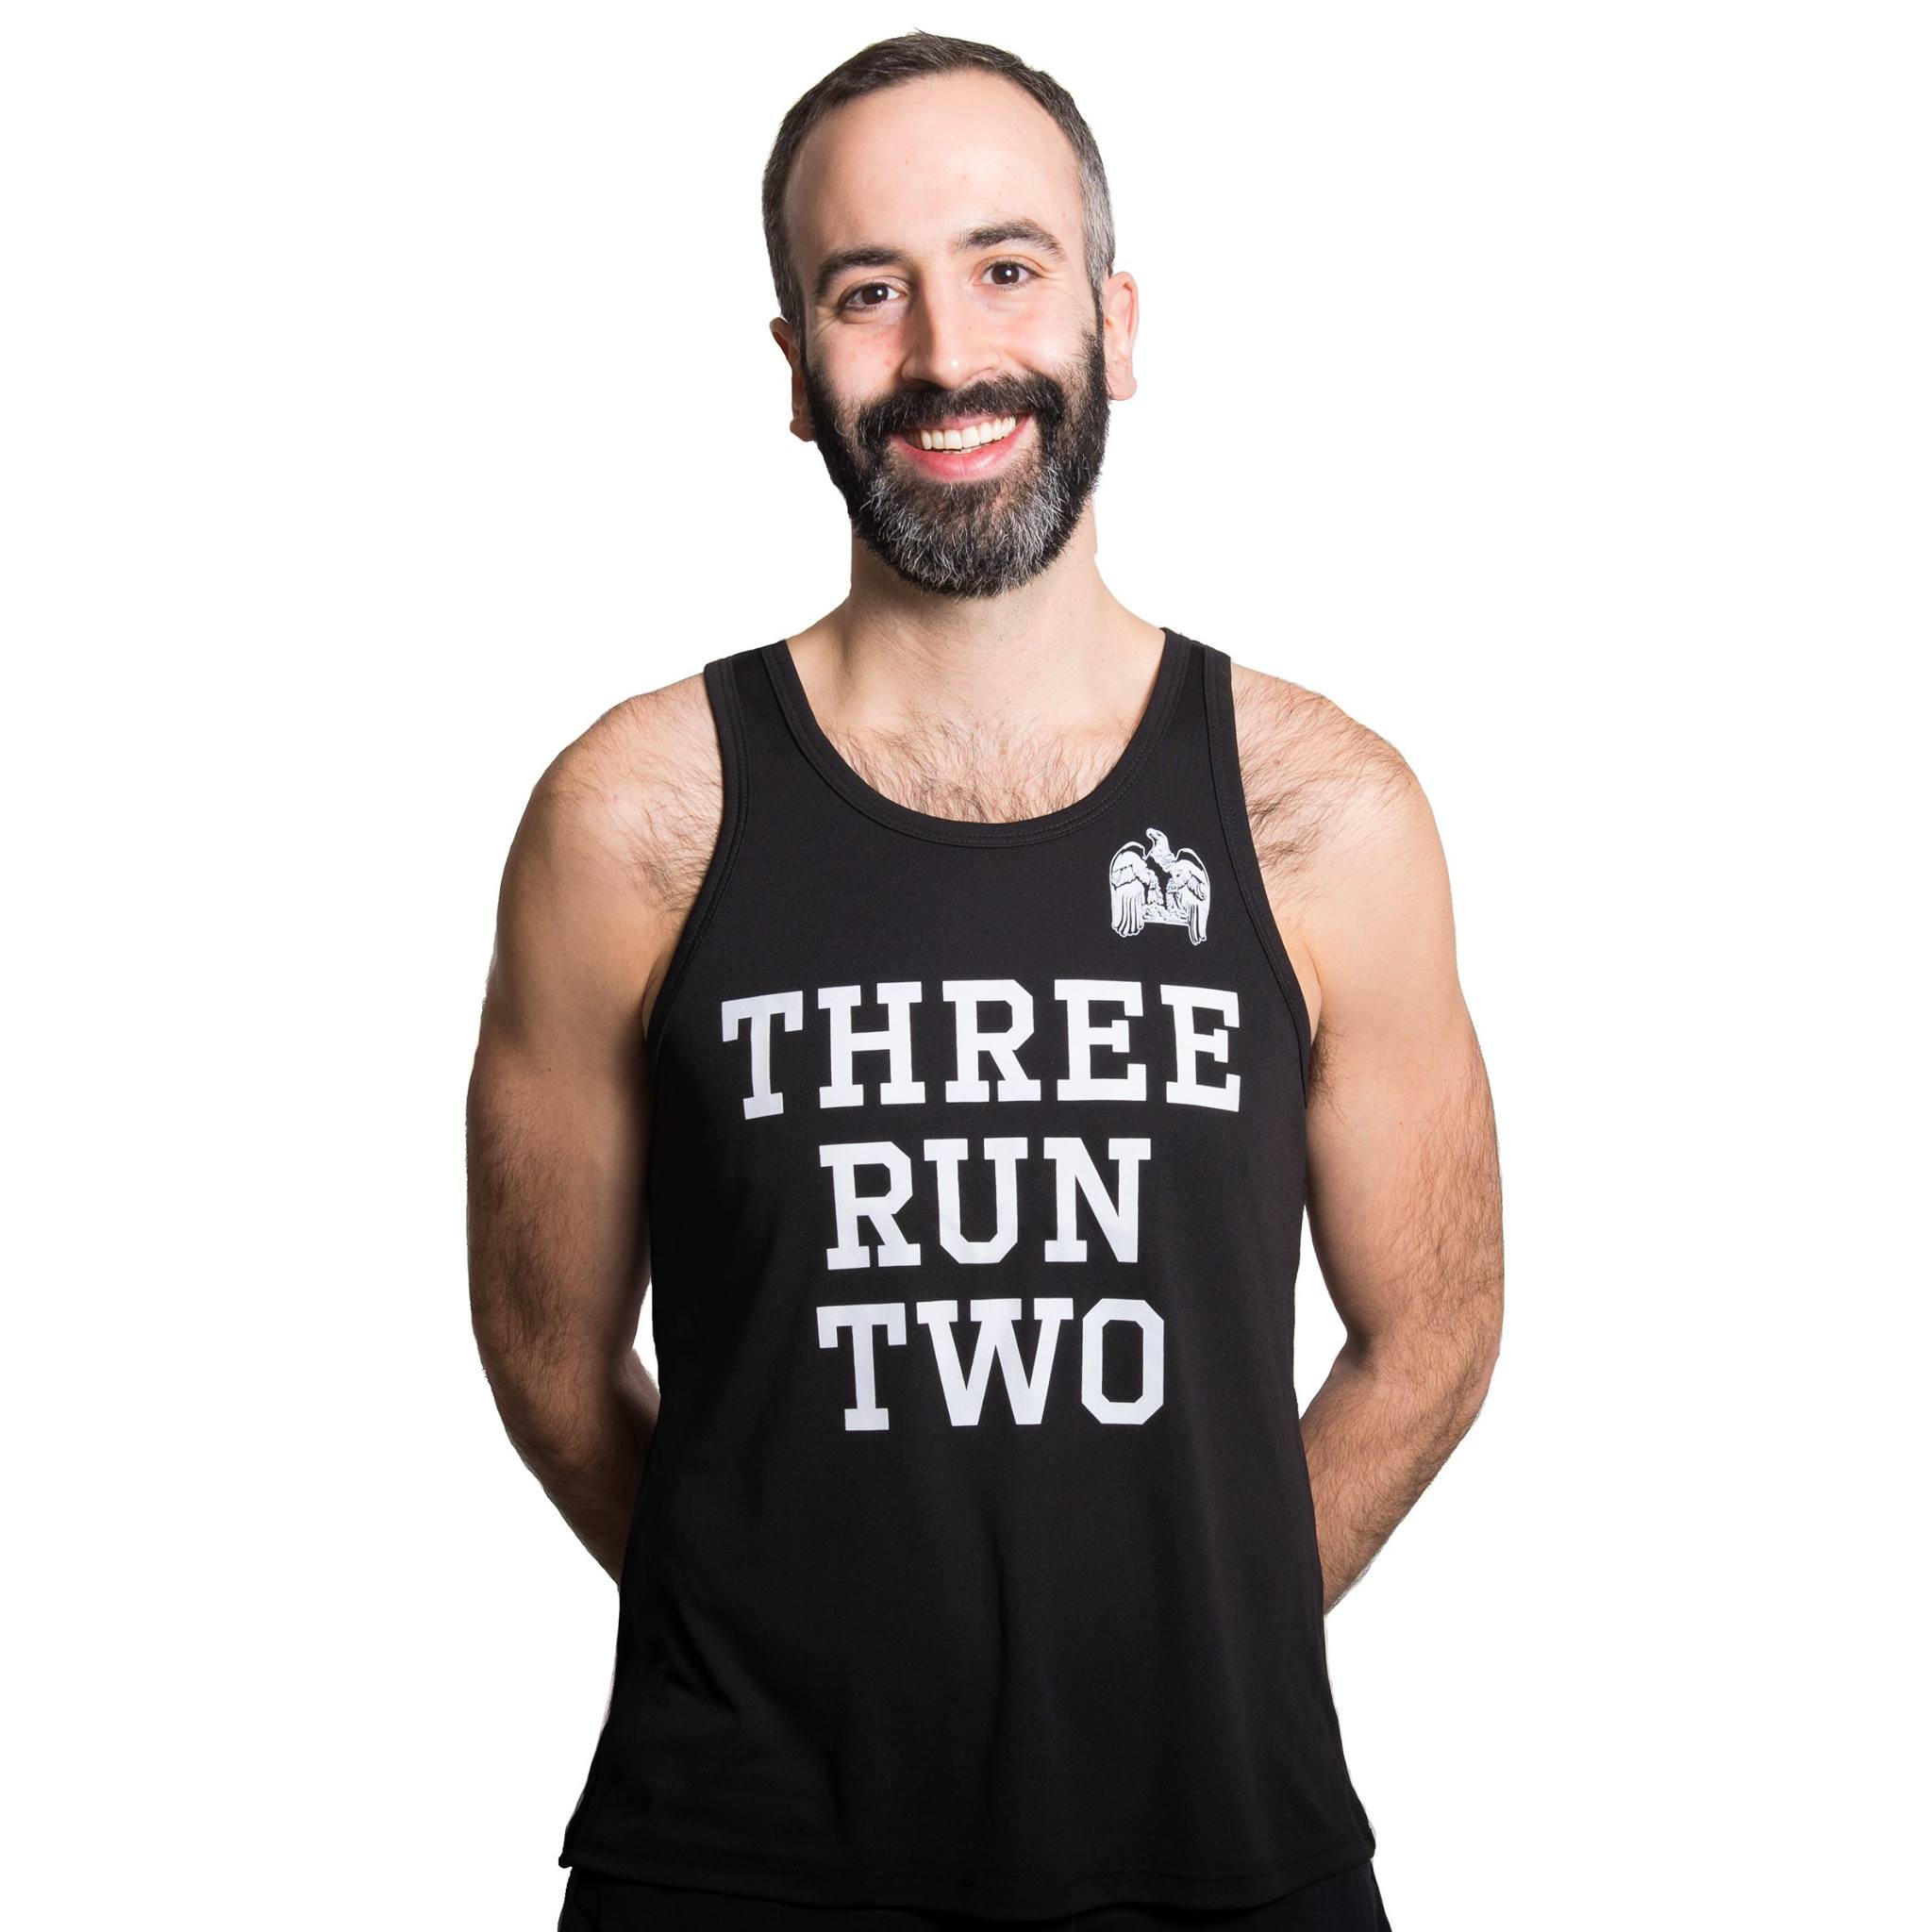 Jimmy Schwartz - Marathon Qualifier and PR: Boston, 2019 - 2:54:472019 Goal Race & Time: Detroit Marathon, 2:48How did you get into running? I never would have called myself a runner in high school or college, I still remember protesting the 3 mile run we had to do for gym class in senior year. When I started working full time, I began jogging a few days a week just for exercise, mainly because it was the only type of exercise that I didn't hate. At the time, I never could have imagined running 5 miles. As I got older, I started to run more frequently, increasing from 3 to 7 miles a day. One day, I went out on a whim and ended up running a half-marathon. At the time, it was so out of my comfort zone, I couldn't believe I did it. I got the running bug, but didn't know how to train properly which leads into...How did you become involved with 3RUN2? My first run with 3RUN2 was in Oct. 2016. I live right near the meet up spot for the Tues. AM group and my friend sent me a link to the website and suggested I check them out. I didn't end up going to the morning run that week, but checked out the Thursday night run instead. I had never run with a group before, and was such a noob that I remember thinking it was funny when we'd come to a stoplight and hear all of the watches beep. I kept up with the people towards the front of the pack (who I later learned were taking it easy that day) but loaded the run to Strava and got a few kudos from people I did not recognize. I went and checked out their profiles and was just blown away by the amount of running they did. I started to understand what it was to train, to run at recovery pace, to do workouts, etc. I was hooked. I started upping my weekly mileage and going on long runs consistently. As I started to come to the group runs more and more throughout the spring, I became friends with the crew, and they convinced me to sign up for my first marathon in the spring. I had planned for Chicago to be my first but I figured why not. I bonked big time at the end but still turned in a respectable time. As much as it hurt, I couldn't wait to start training for Chicago, and had the carrot of this racing team to motivate me. Now, I consider 3RUN2 to be one of the most important parts of my life. I've met so many great people and made a ton of new friends. Looking forward to many more miles and races with this group!